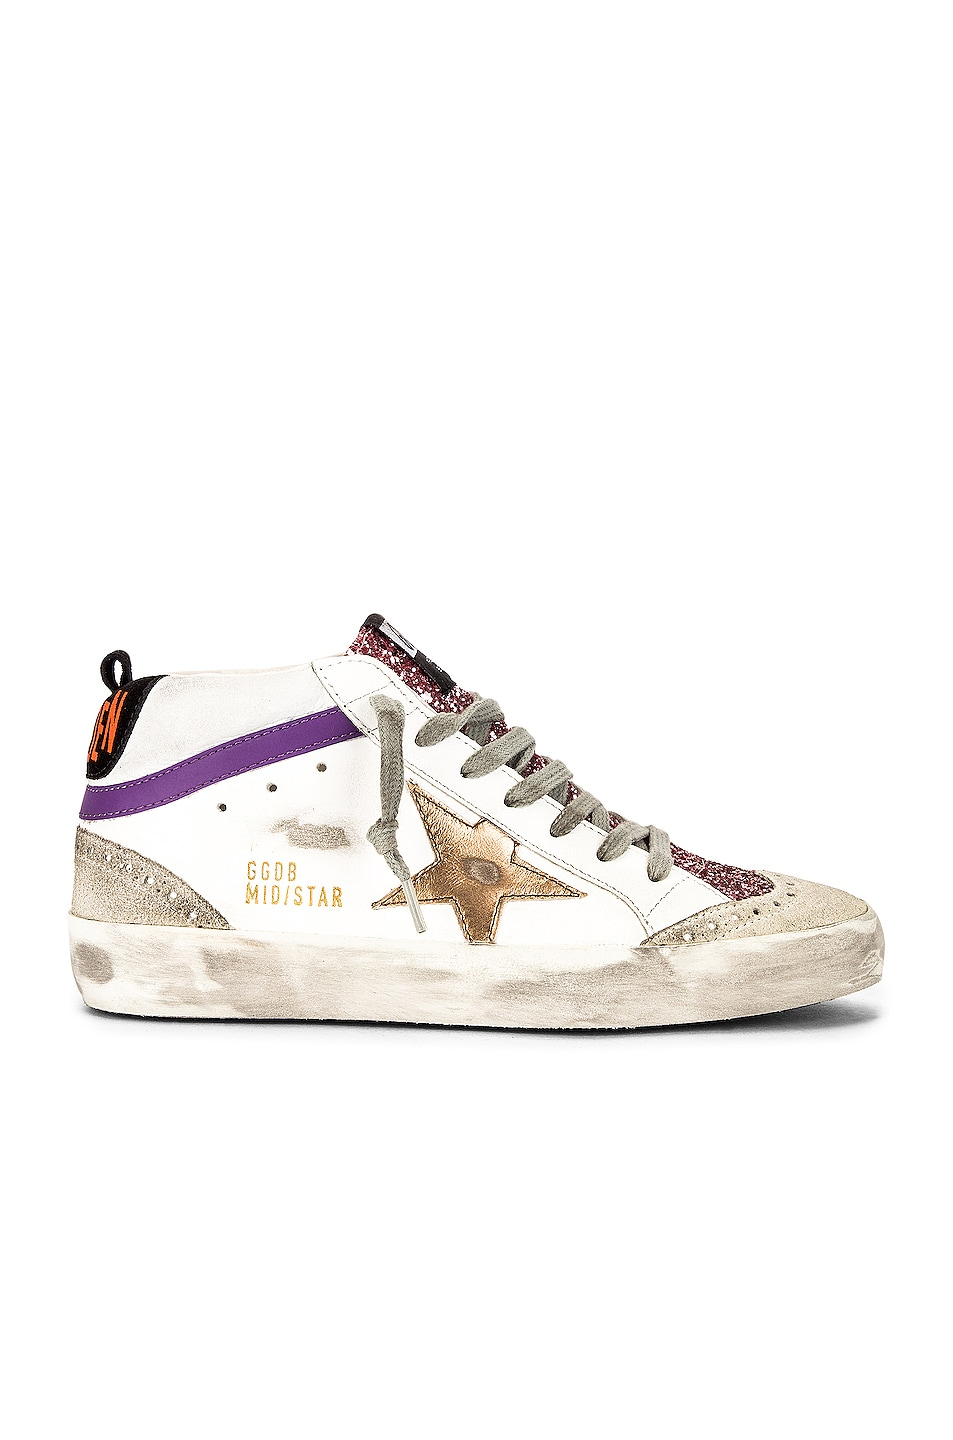 Image 1 of Golden Goose Mid Star Sneaker in White, Pink, Ice, Brown & Black